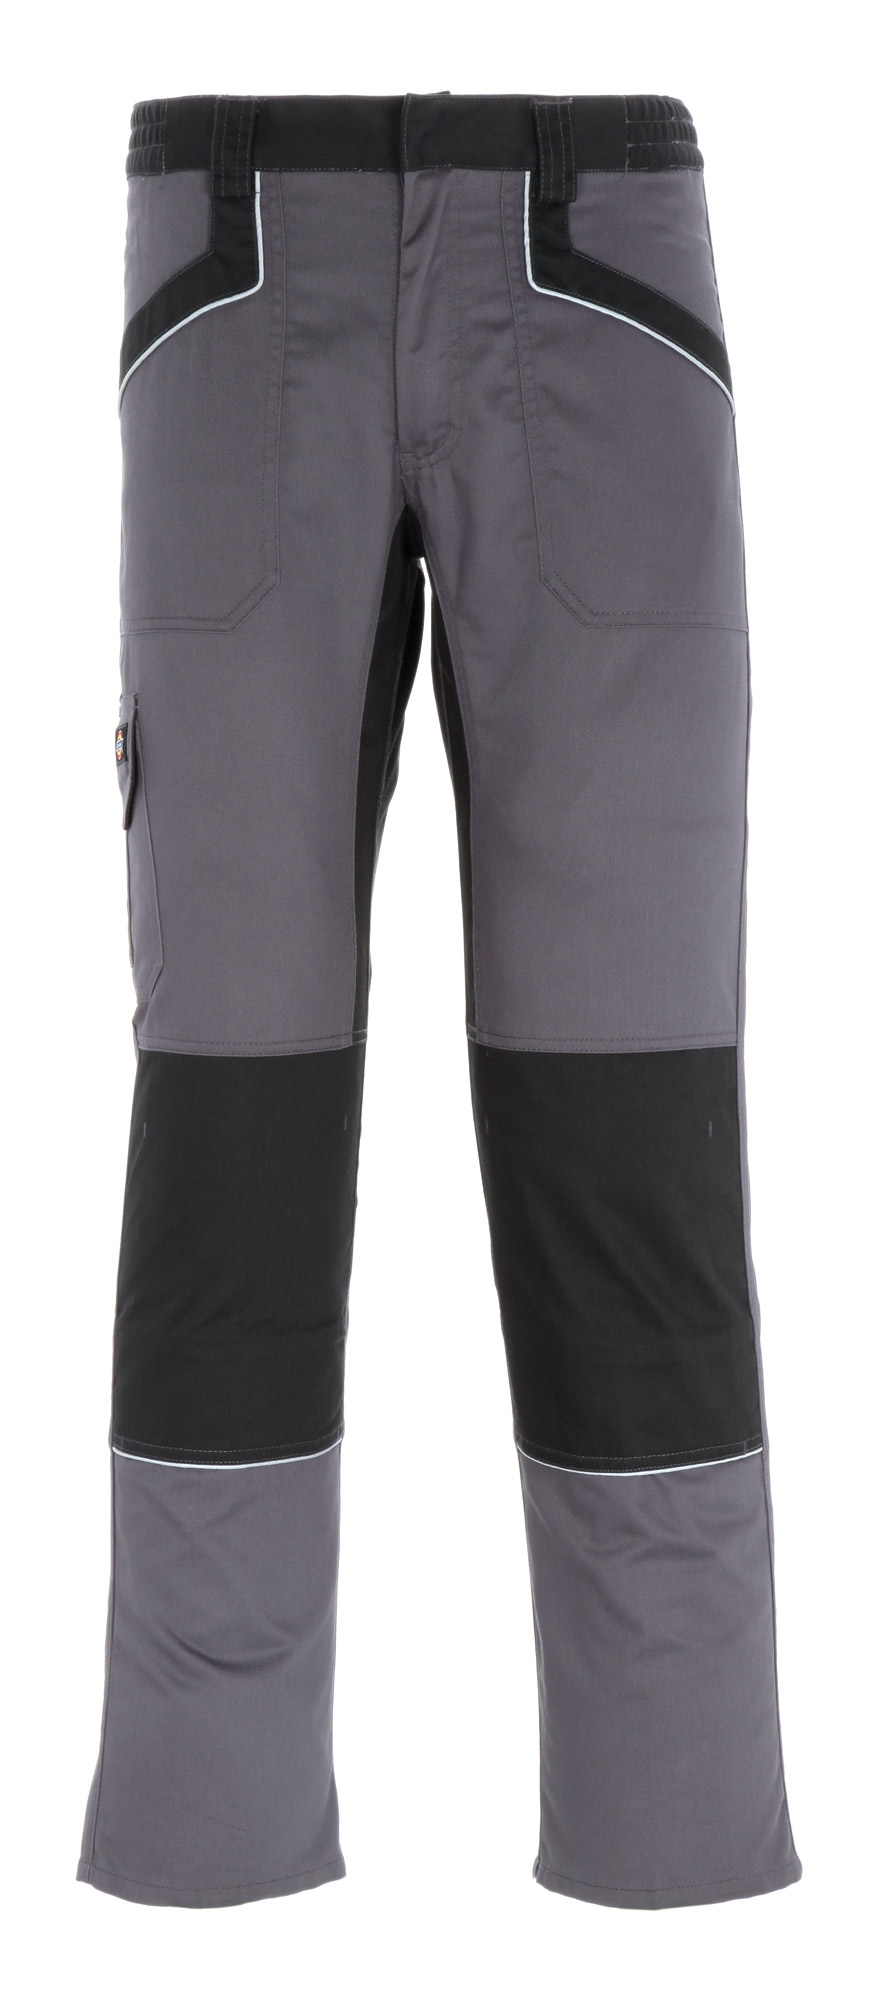 IND260 Trousers Grey/Black 40